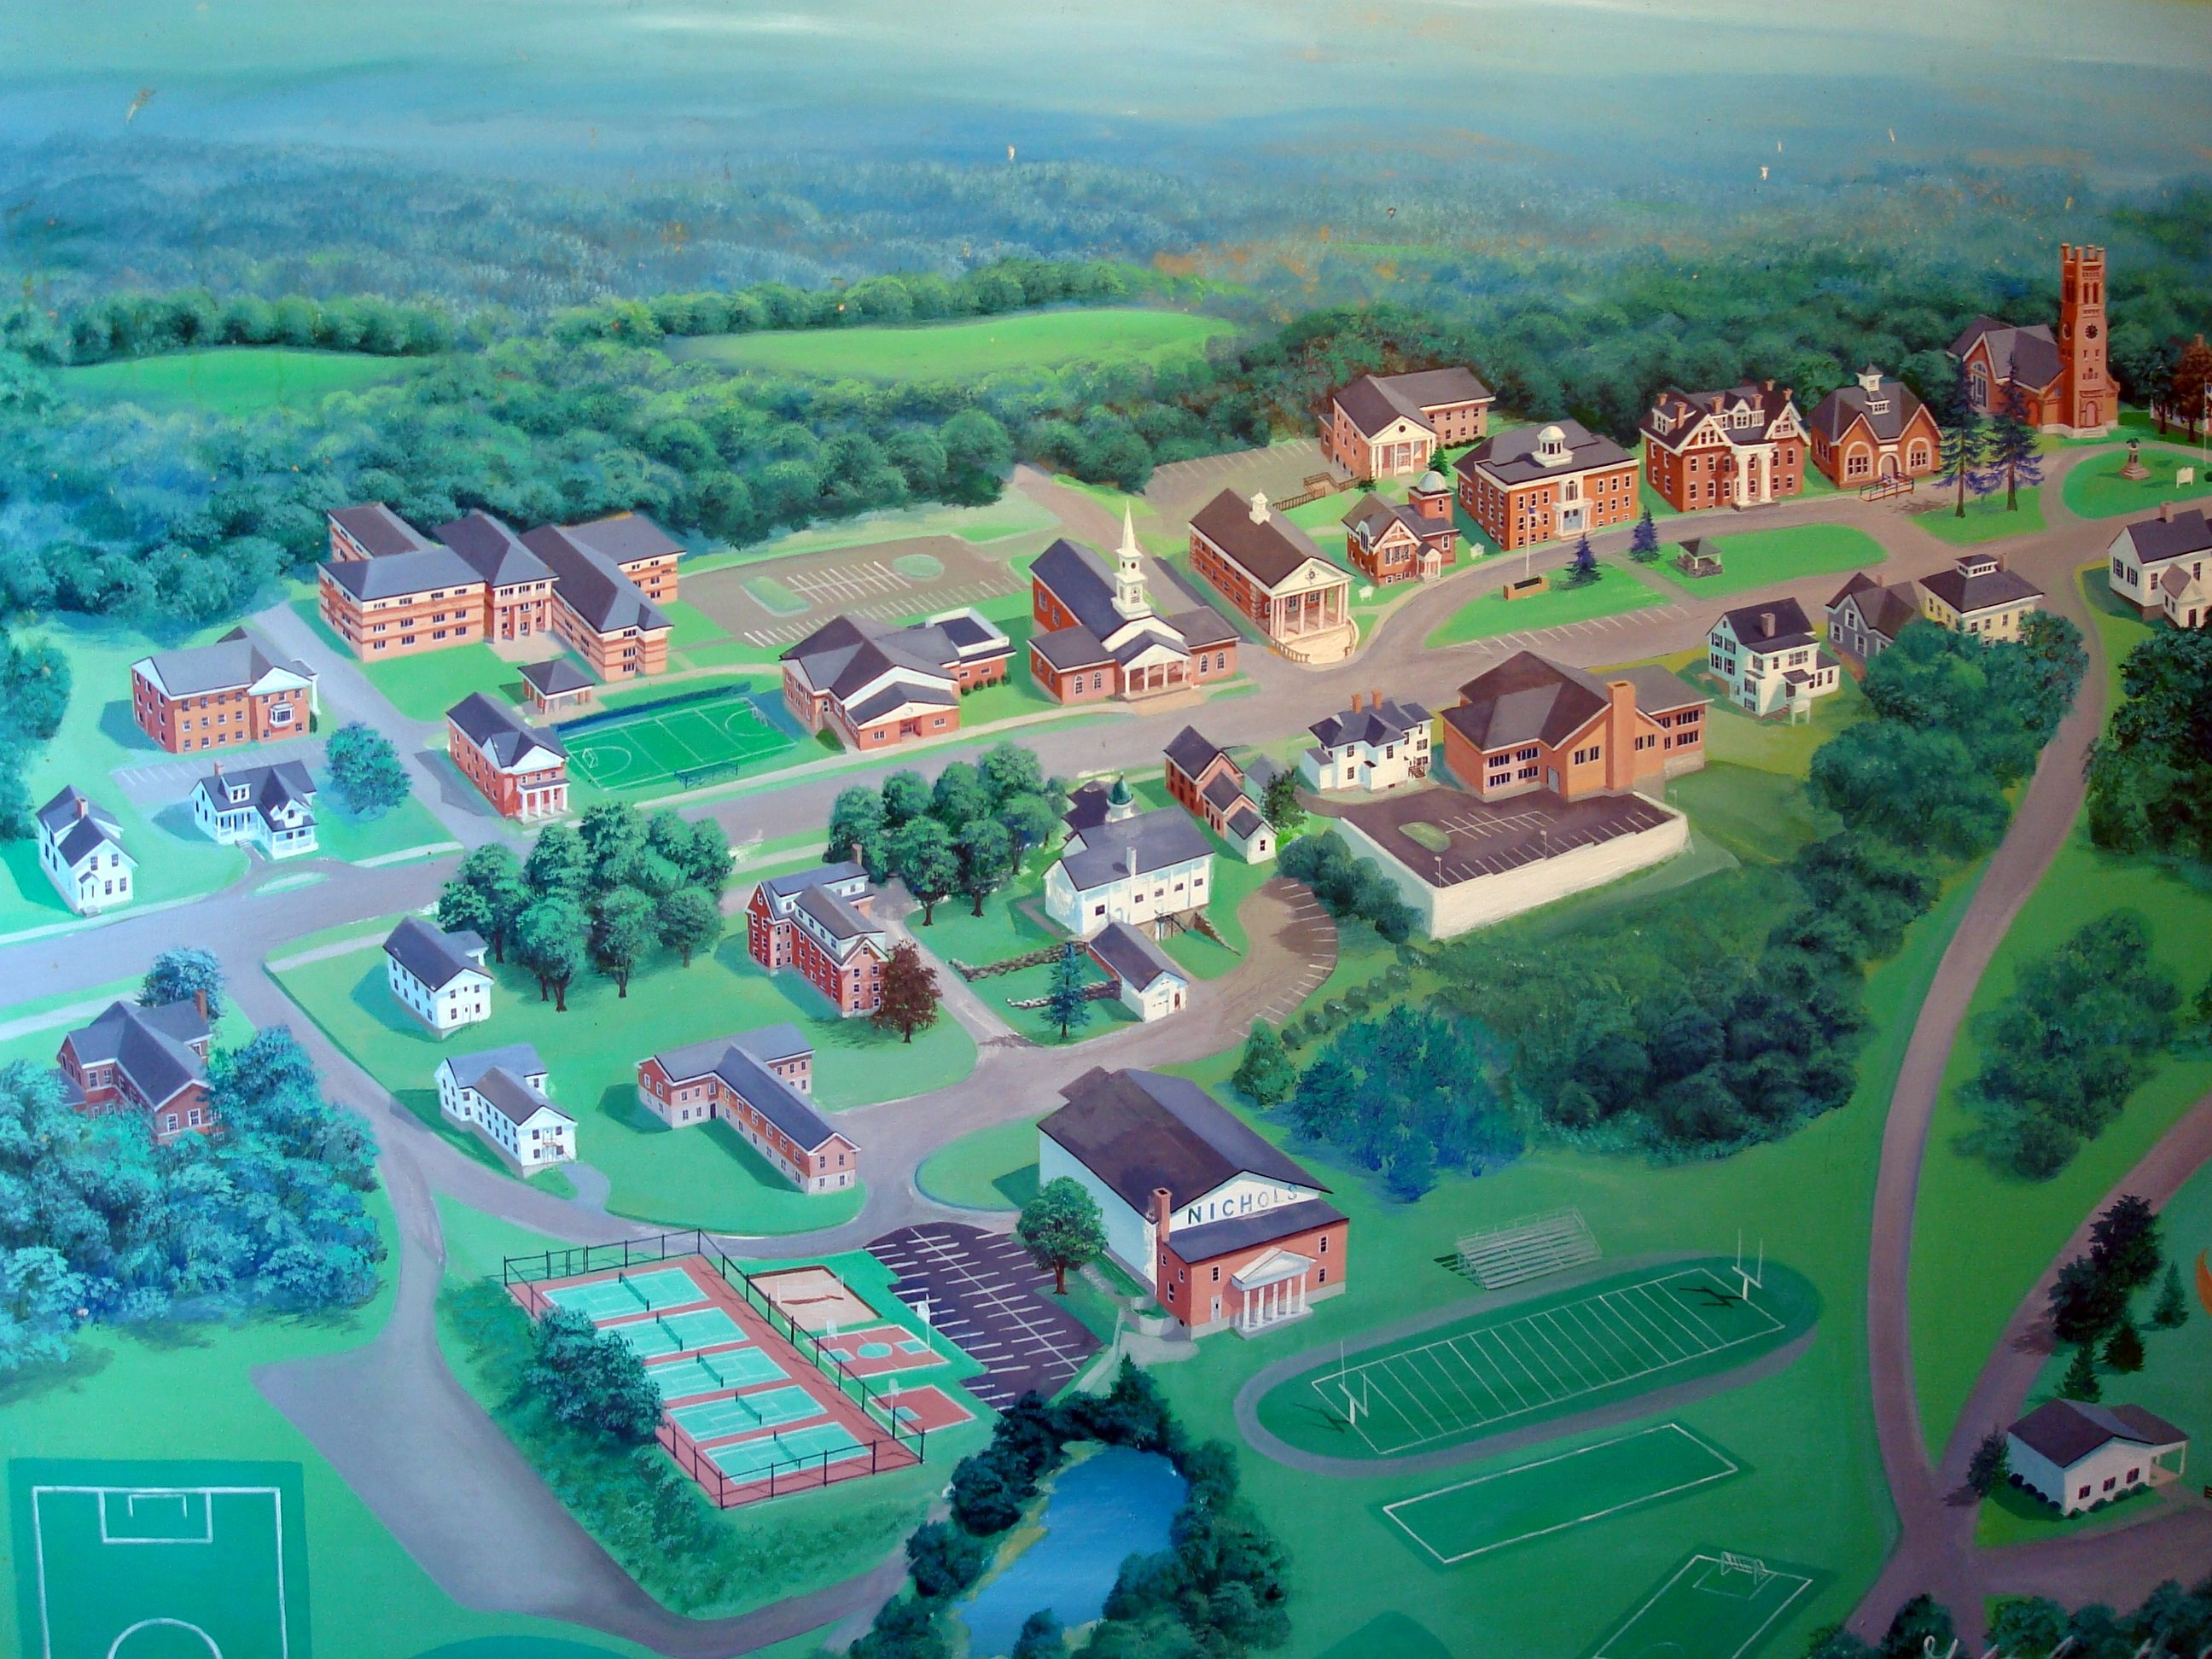 painting of the campus of Nichols College, with a myriad of brick buildings, a football field, and winding paths carved out from a surrounding, green forest